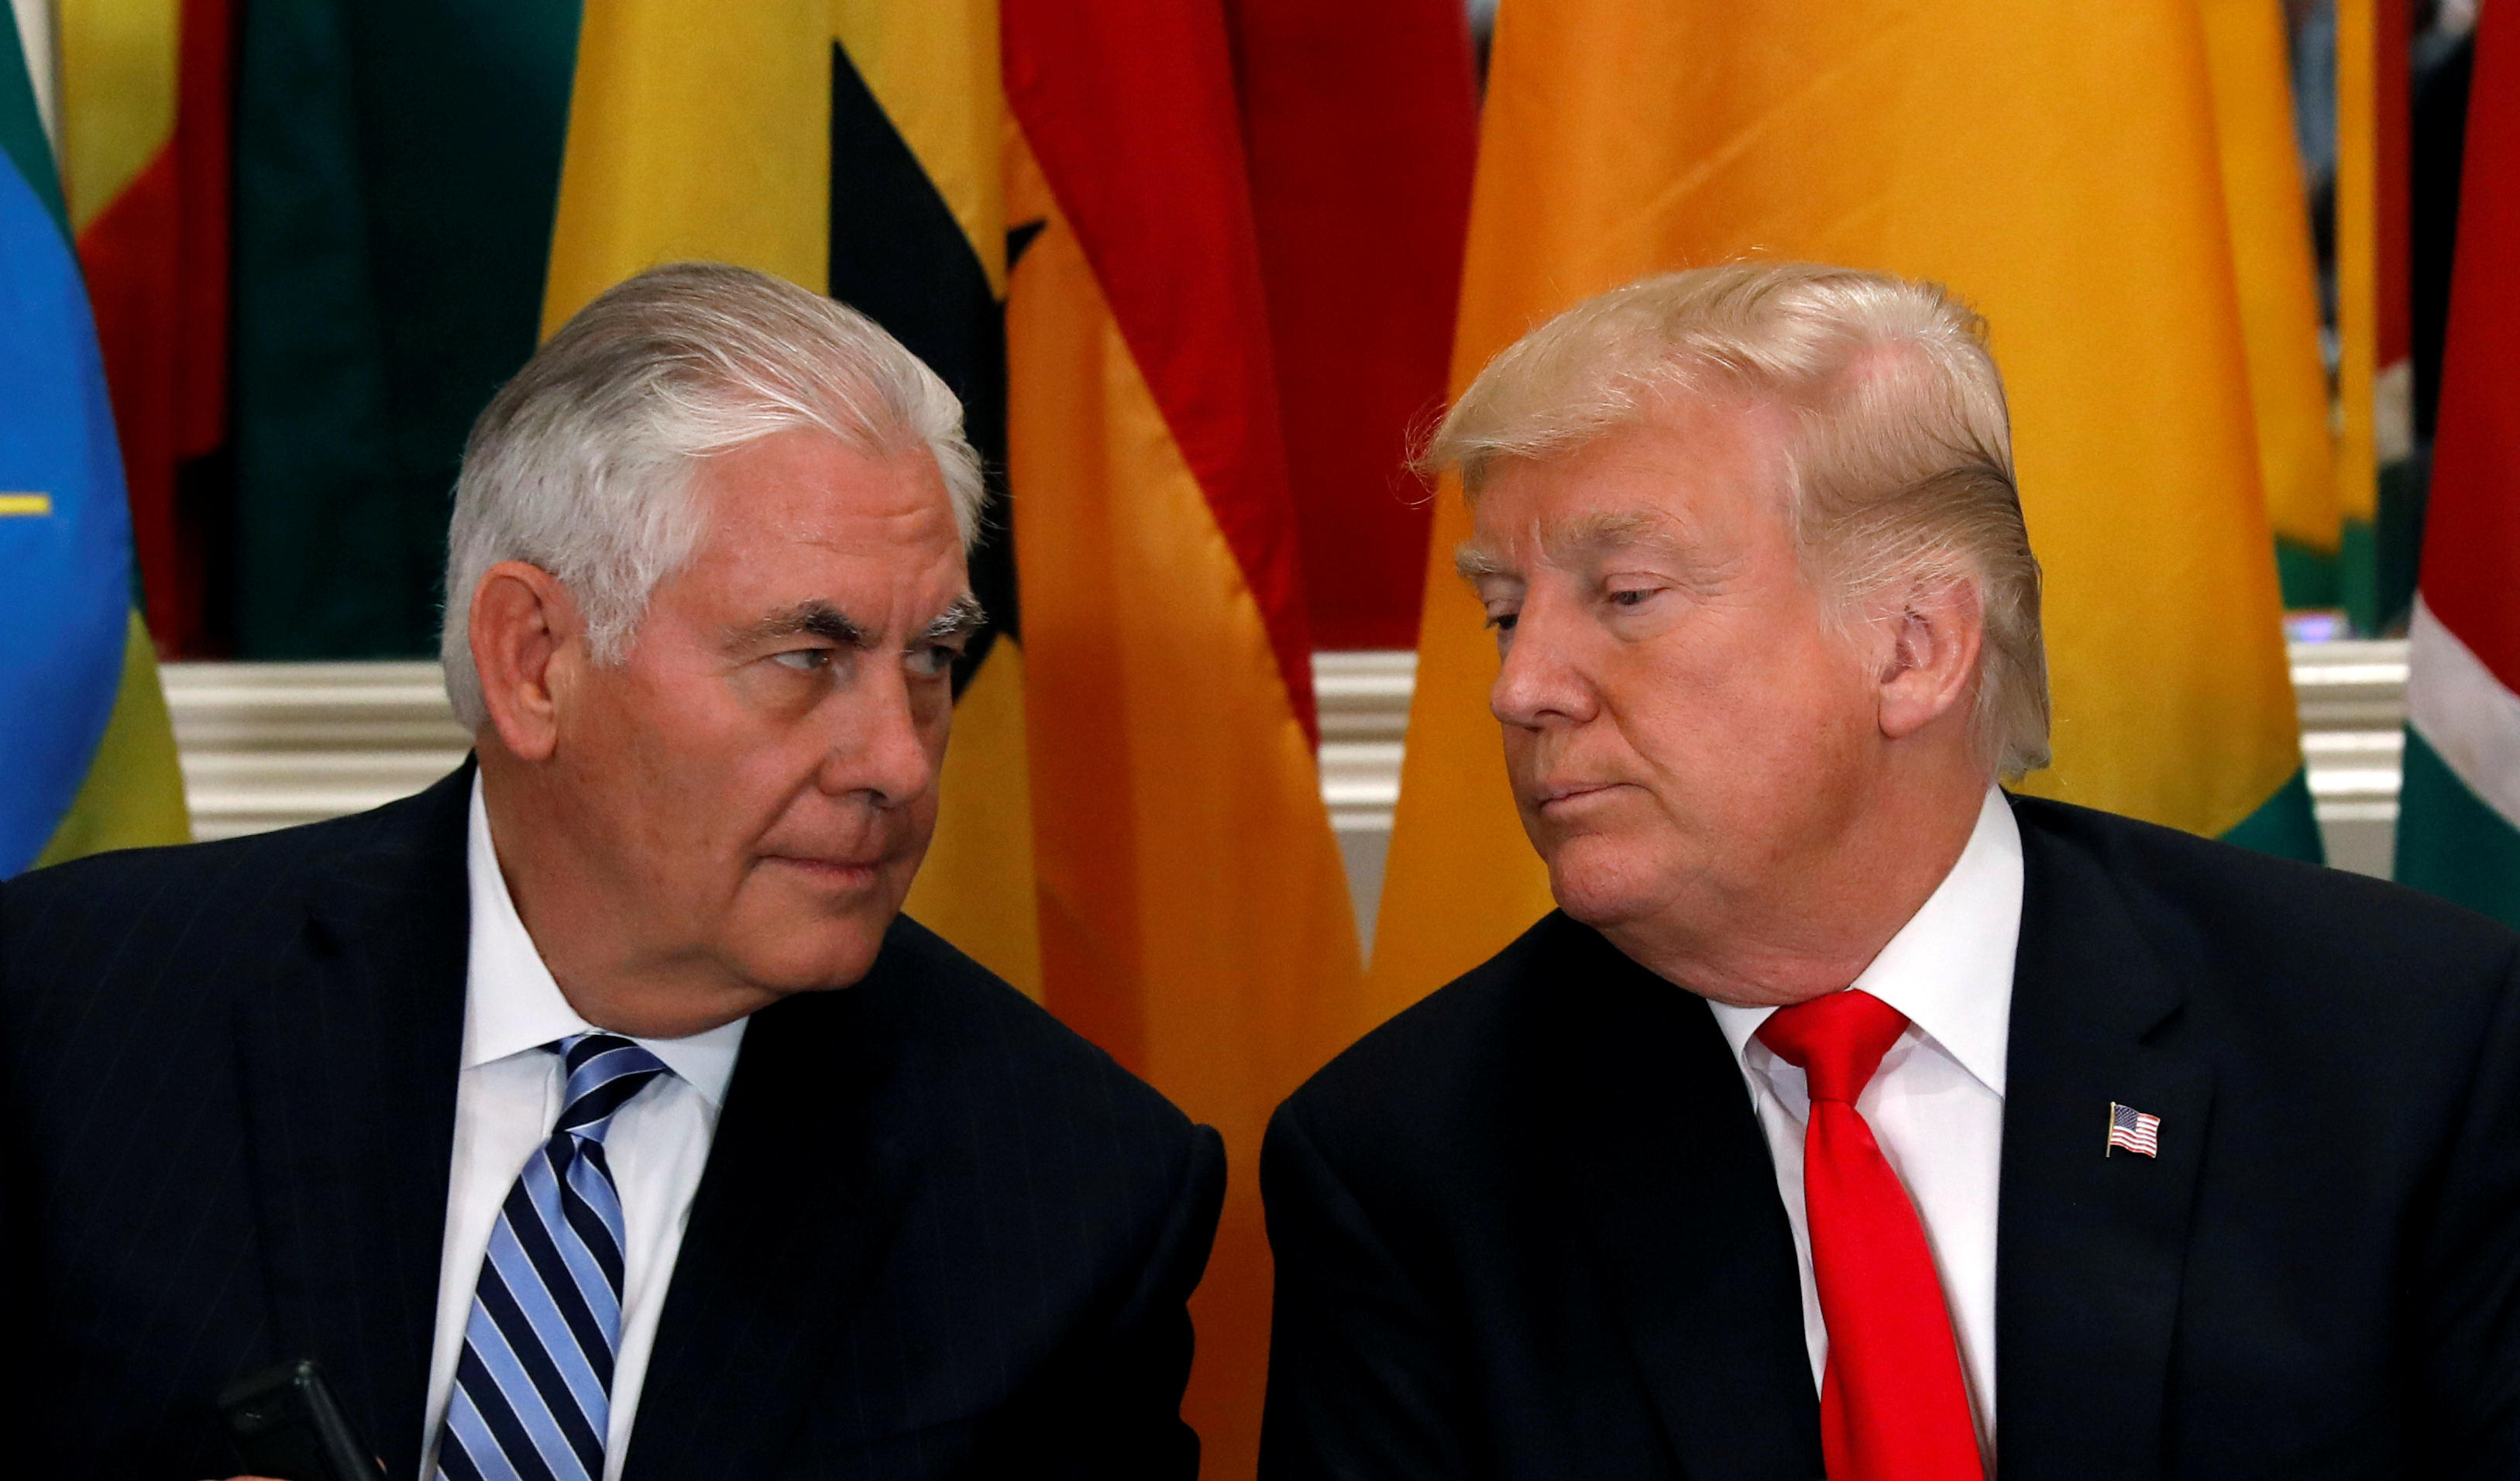 Mensa reveals what an IQ test could look like for Trump, Tillerson